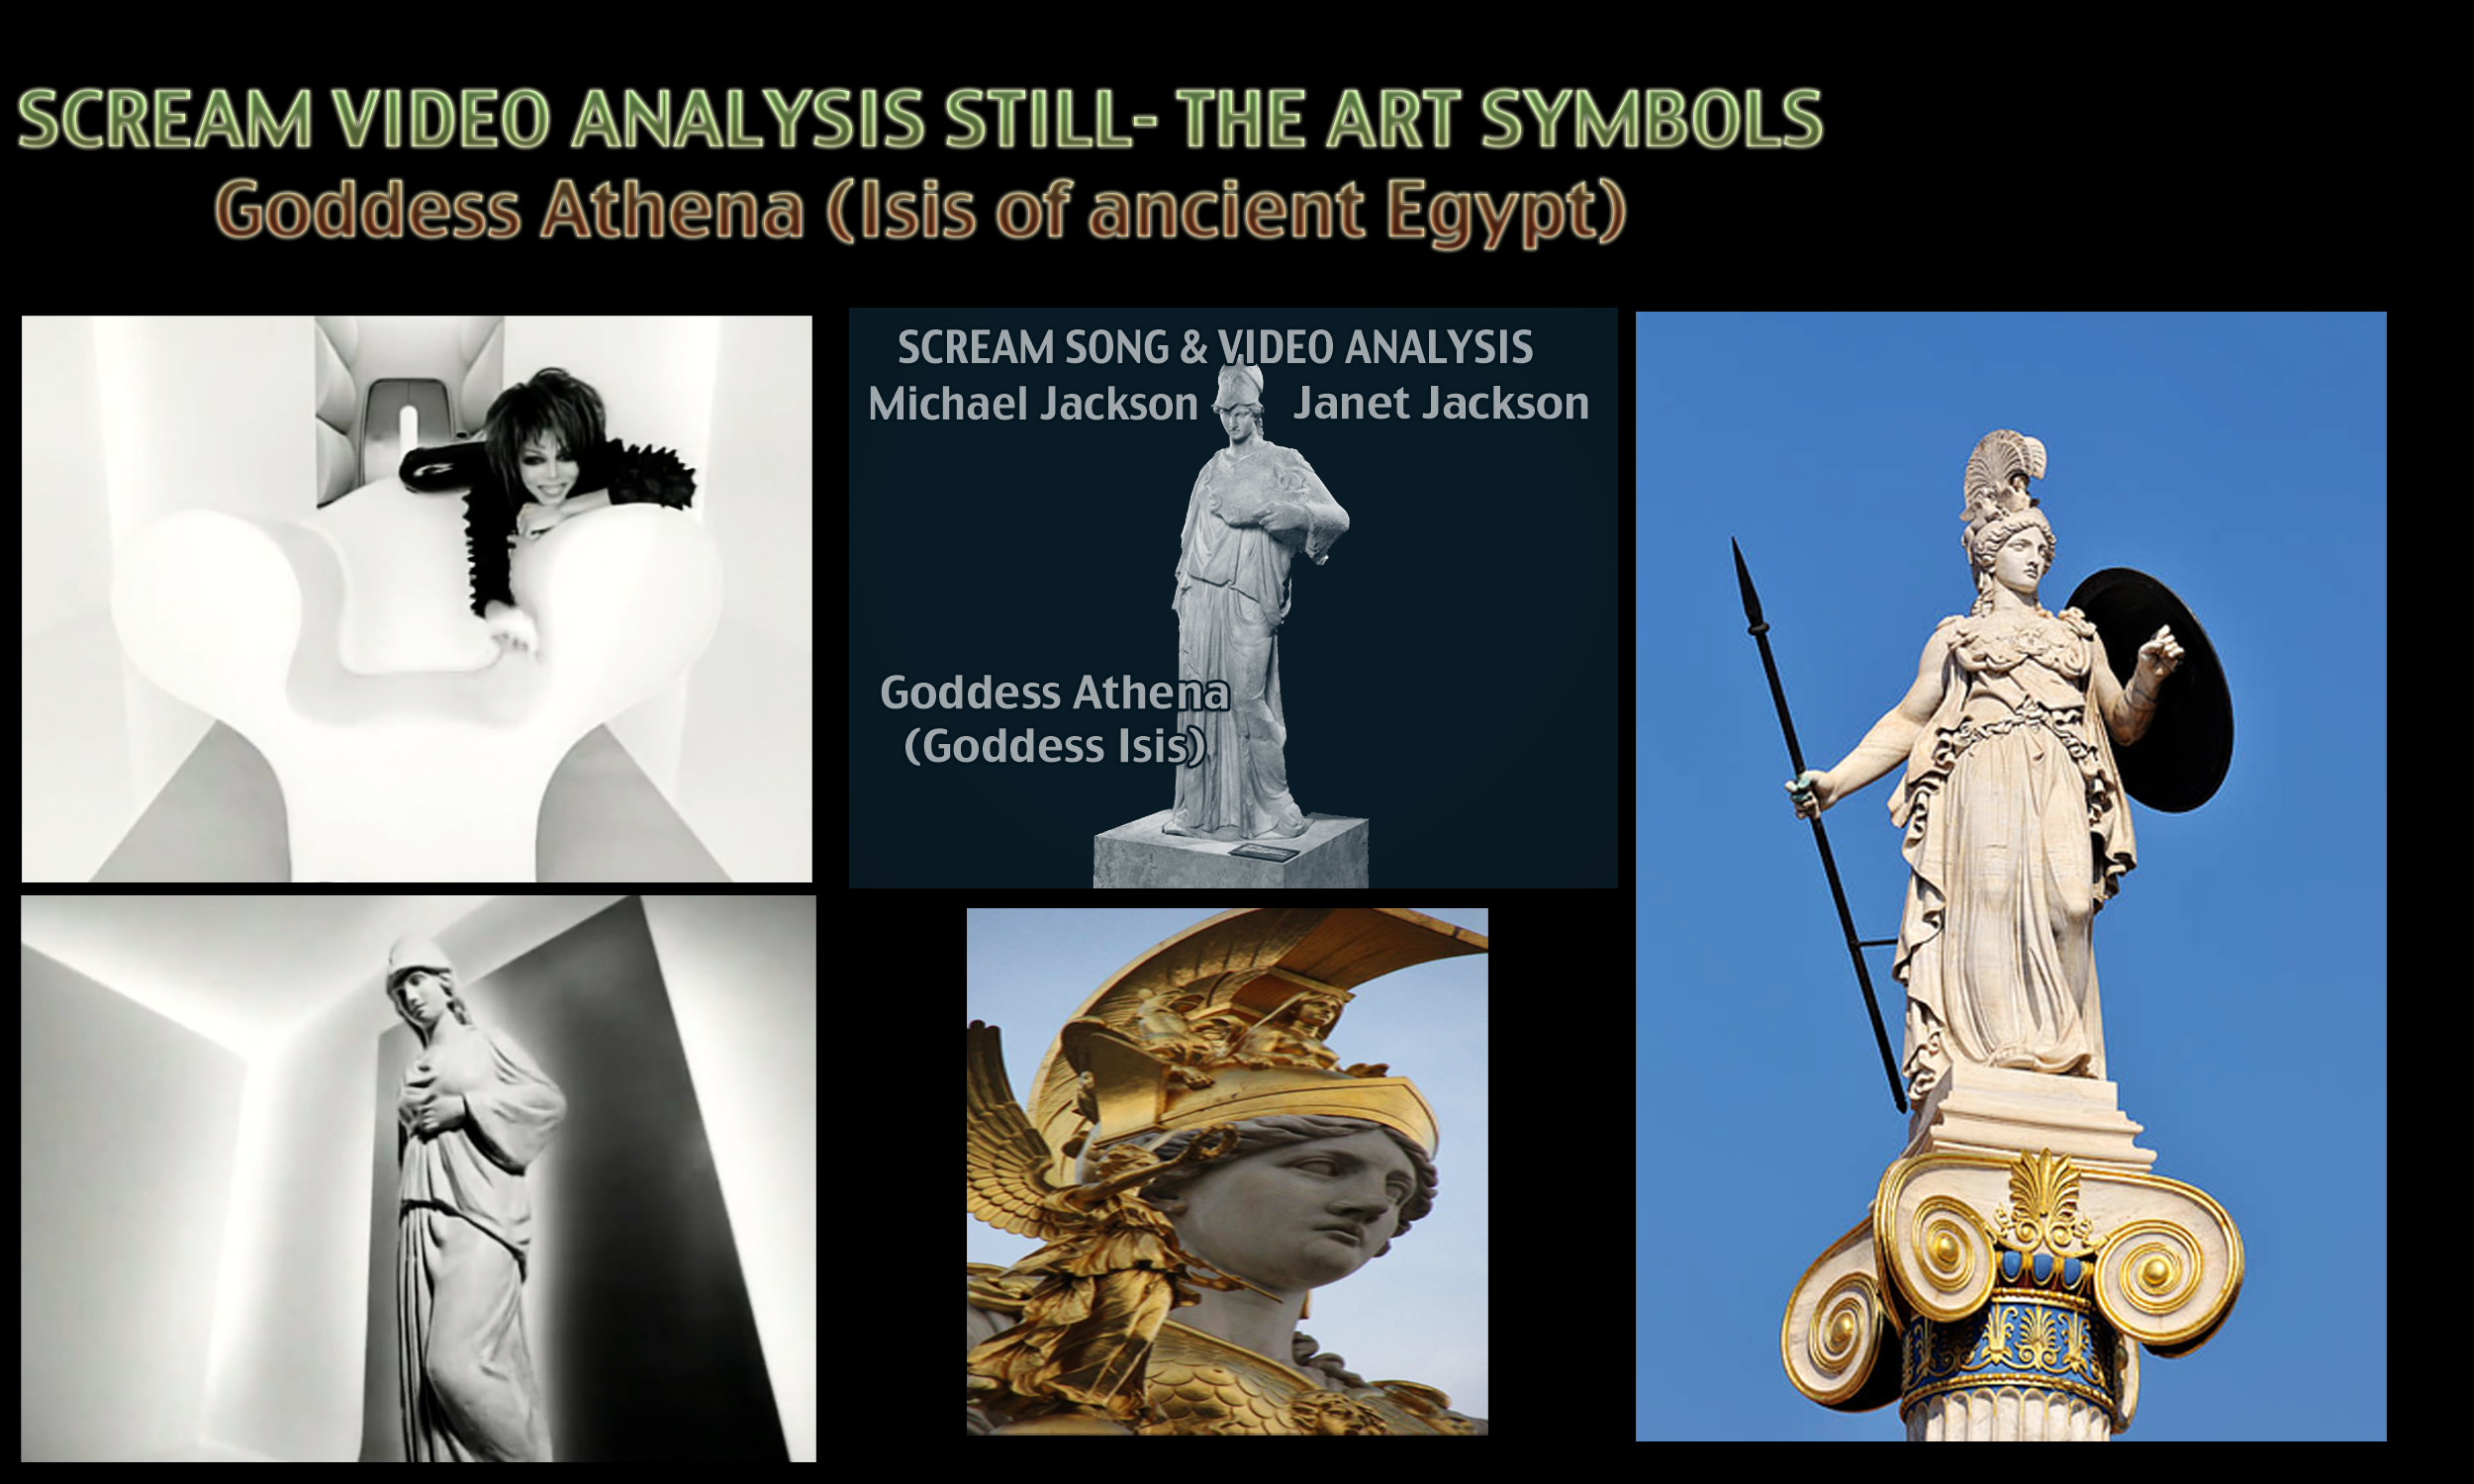 michael jackson s knowledge about the city of athena venus and